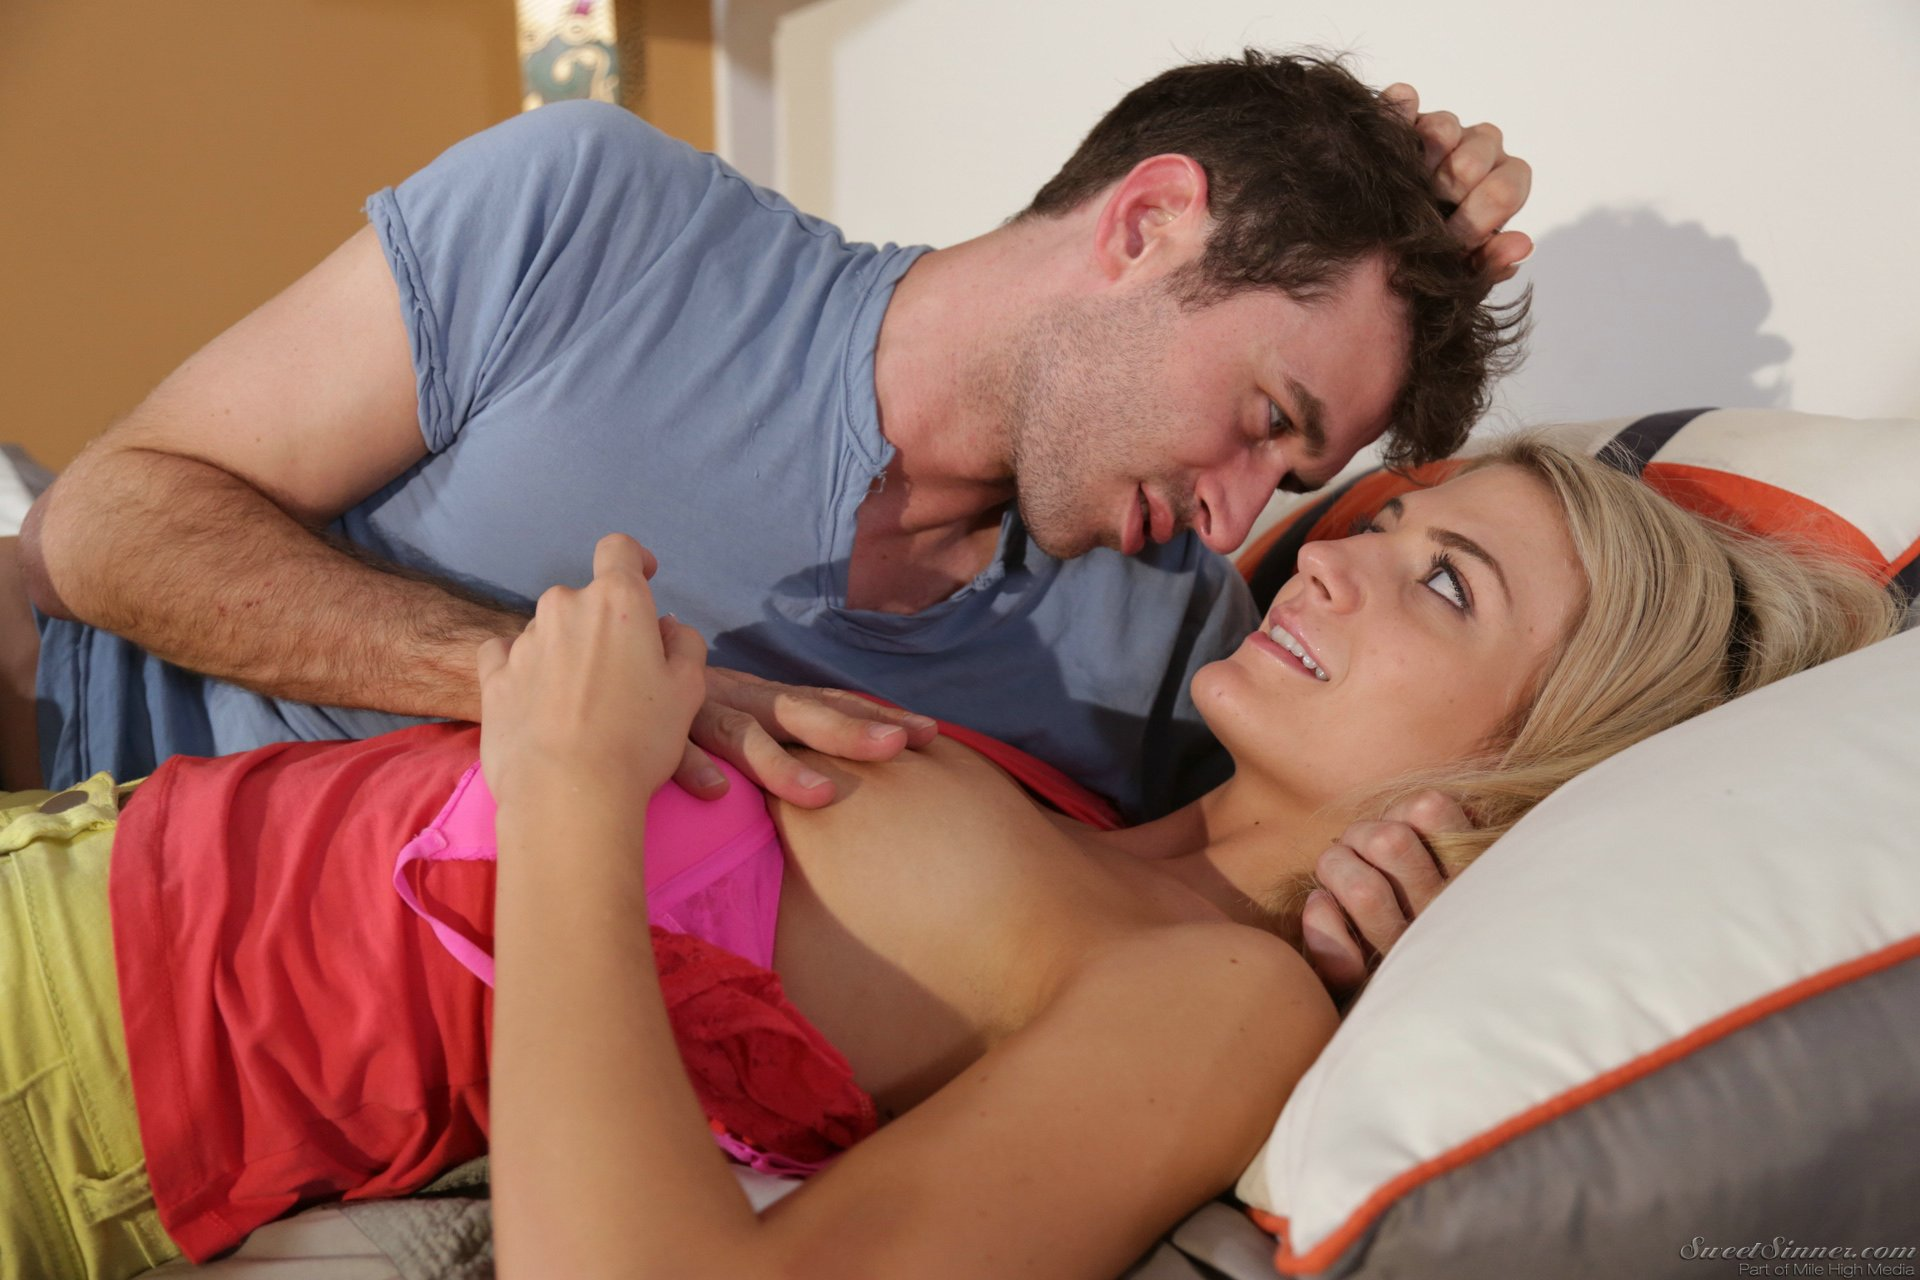 Amanda Love Having Sex amanda tate and james deen making hot love - my pornstar book